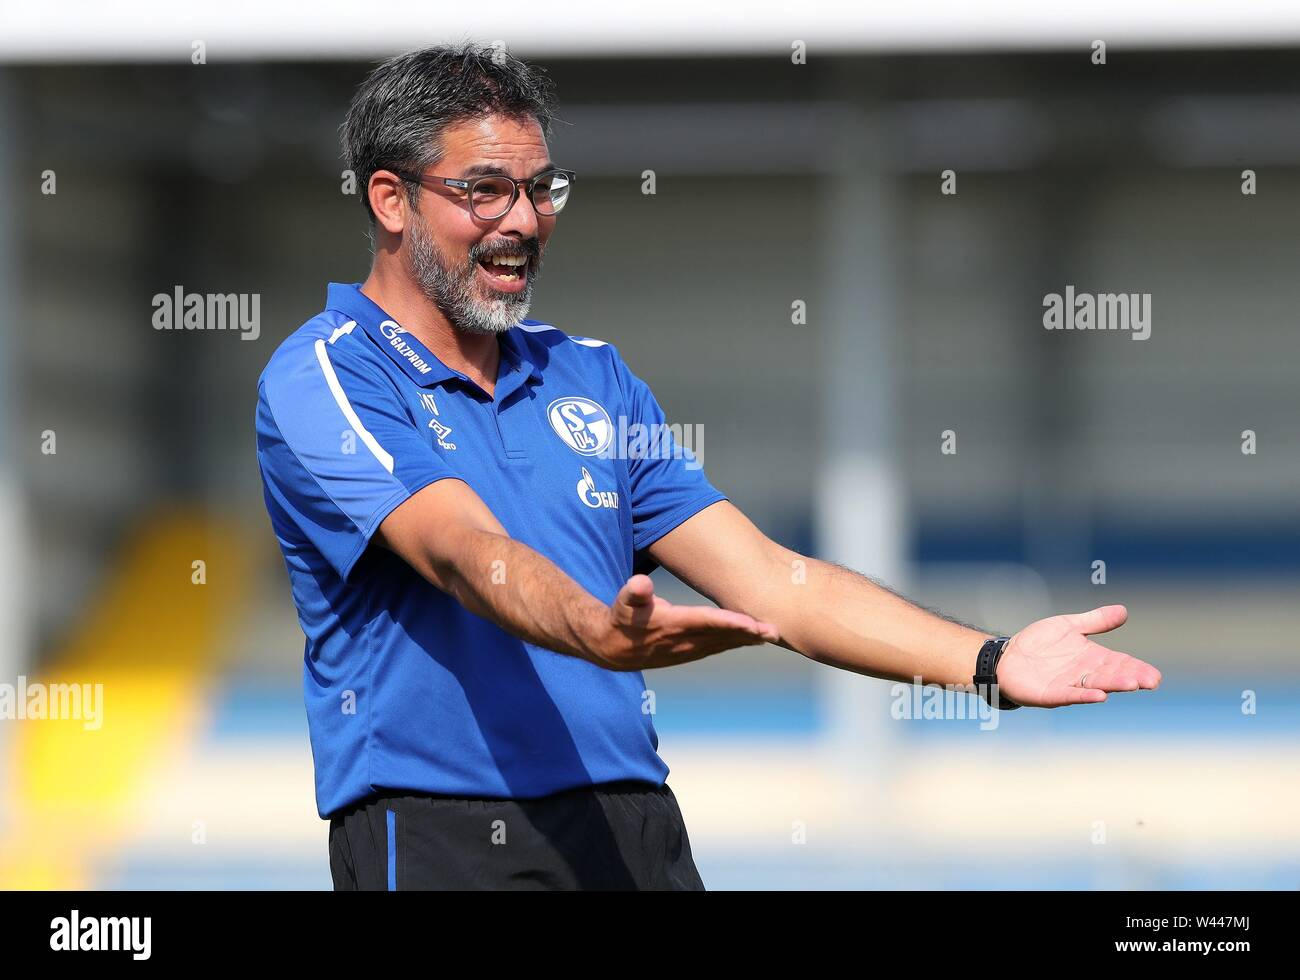 Lotte, Deutschland. 19th July, 2019. firo: 19.07.2019, football, 1.Bundesliga, season 2019/2020, friendly match, FC Schalke 04 - Norwich City coach David WAGNER, Schalke, gesture, laughs | Credit: dpa/Alamy Live News - Stock Image